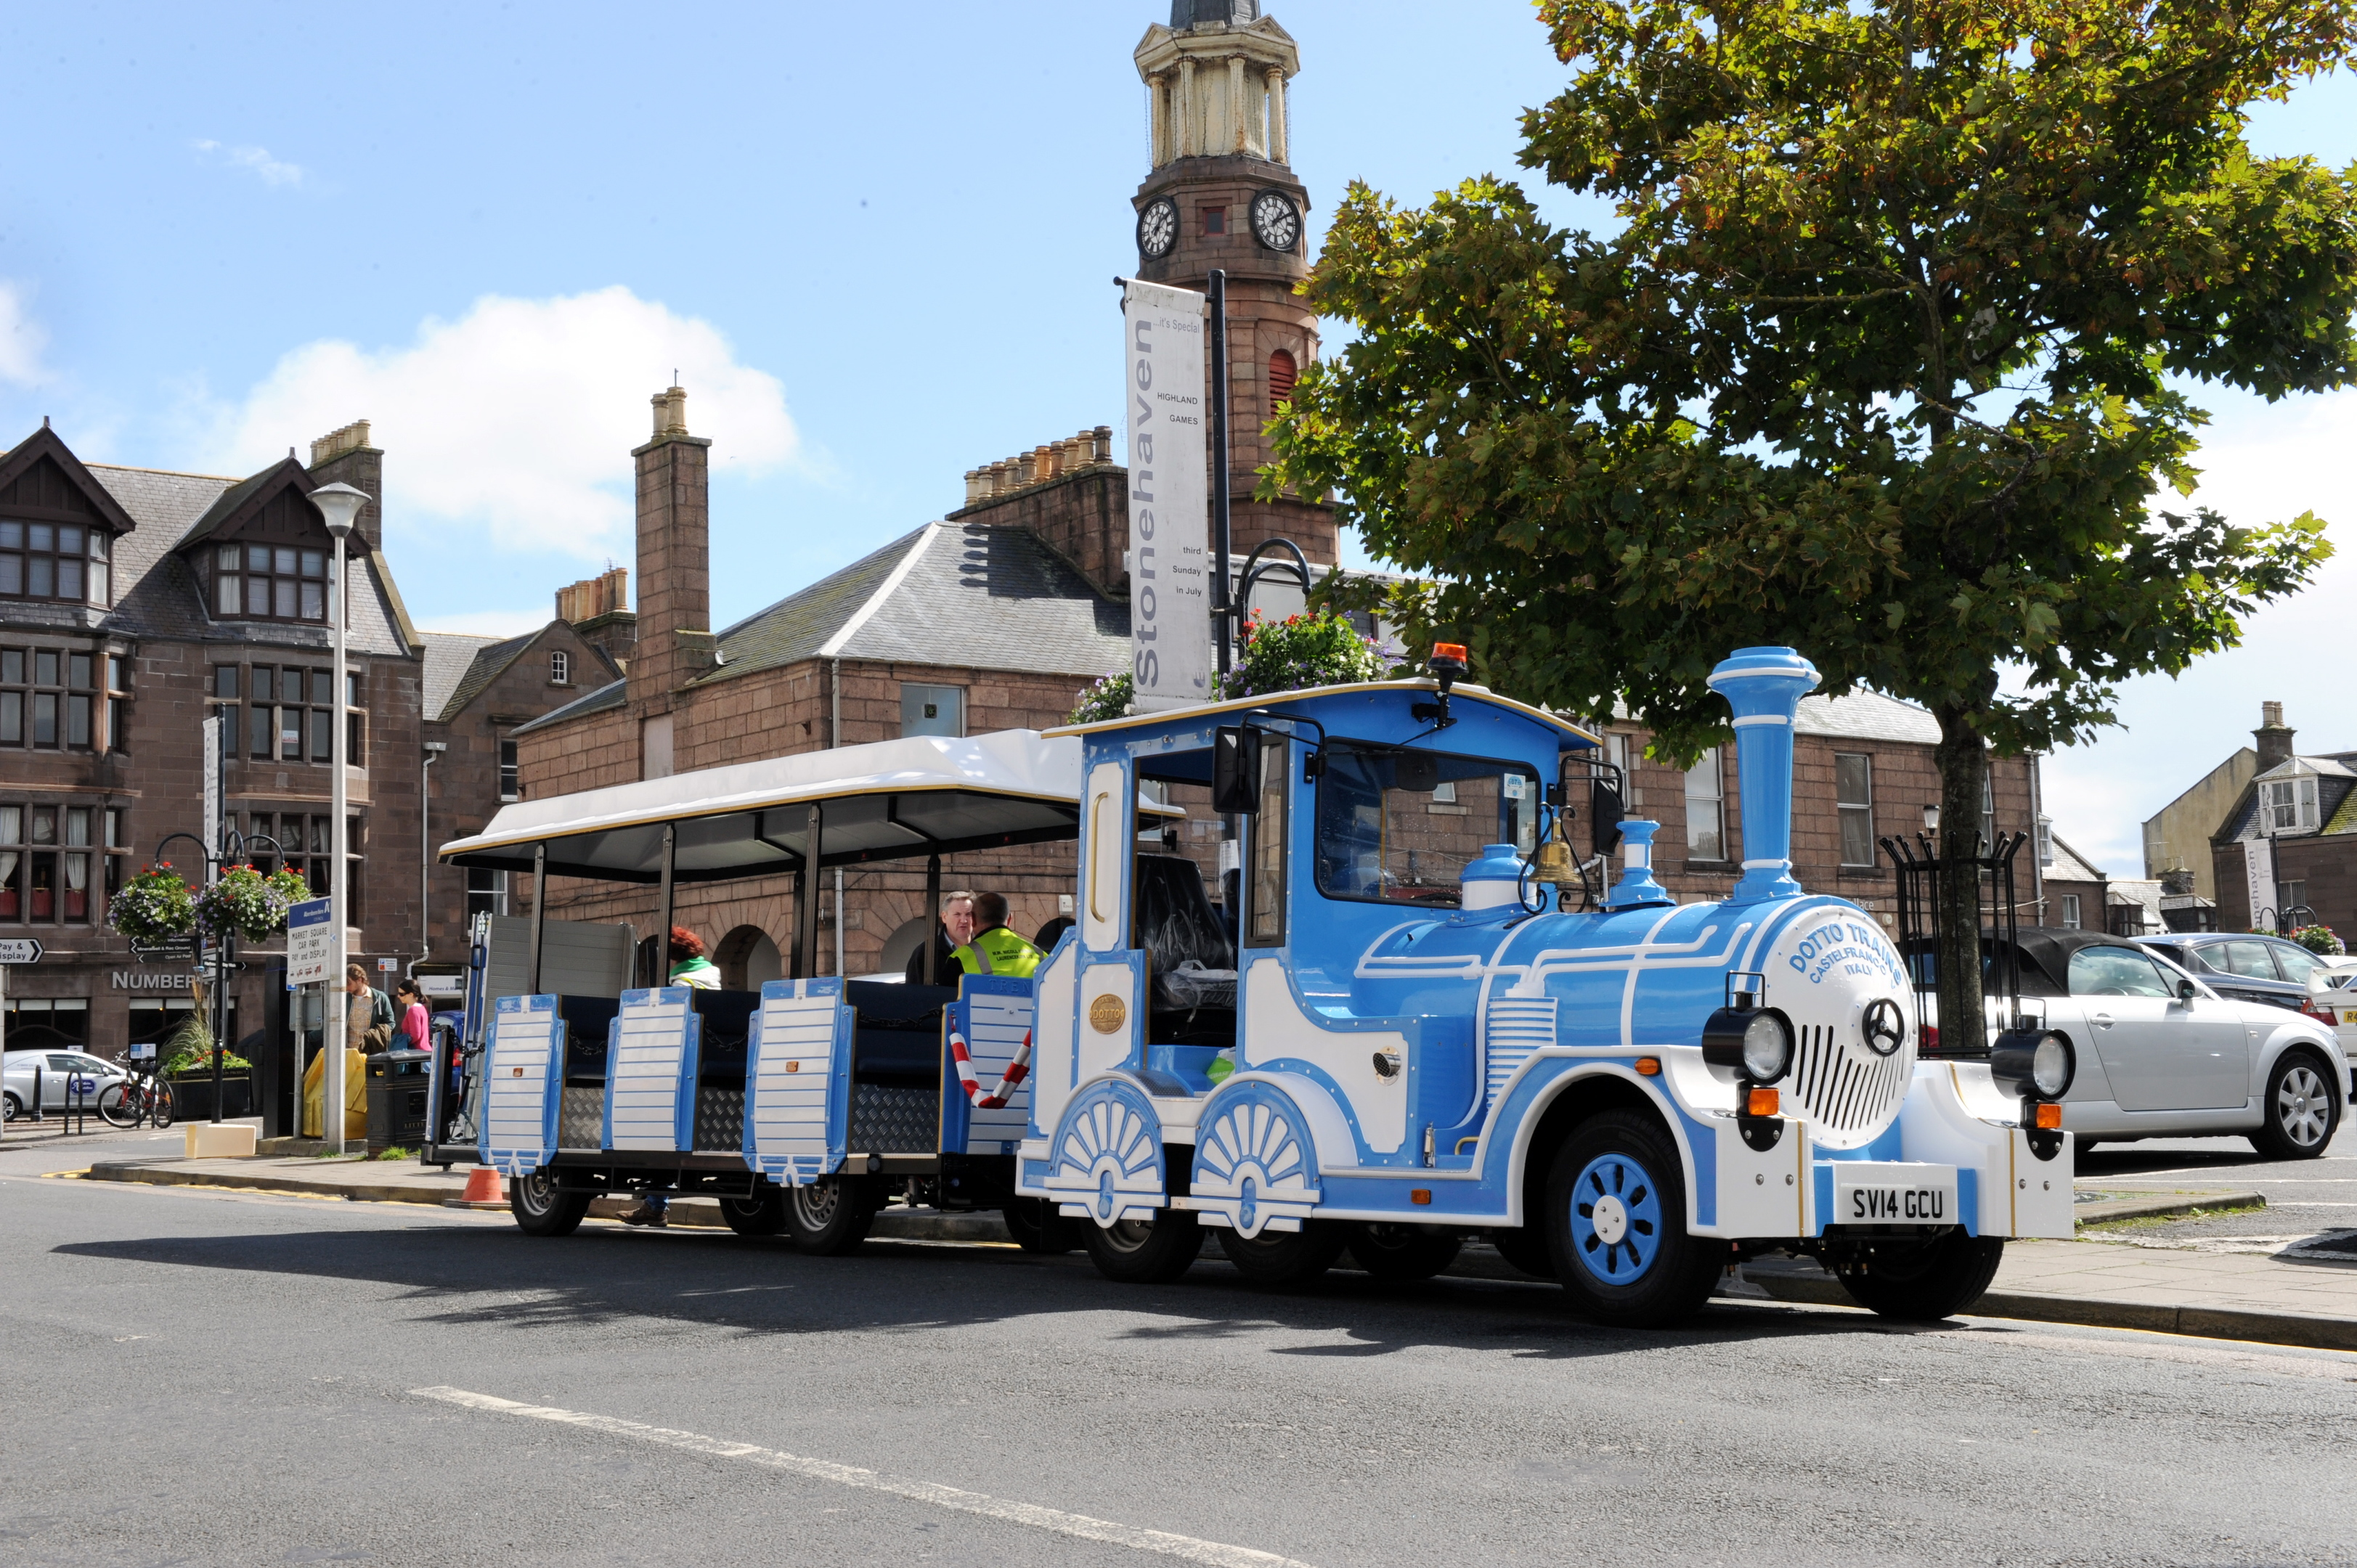 The Stonehaven land train is to get a second carriage soon.